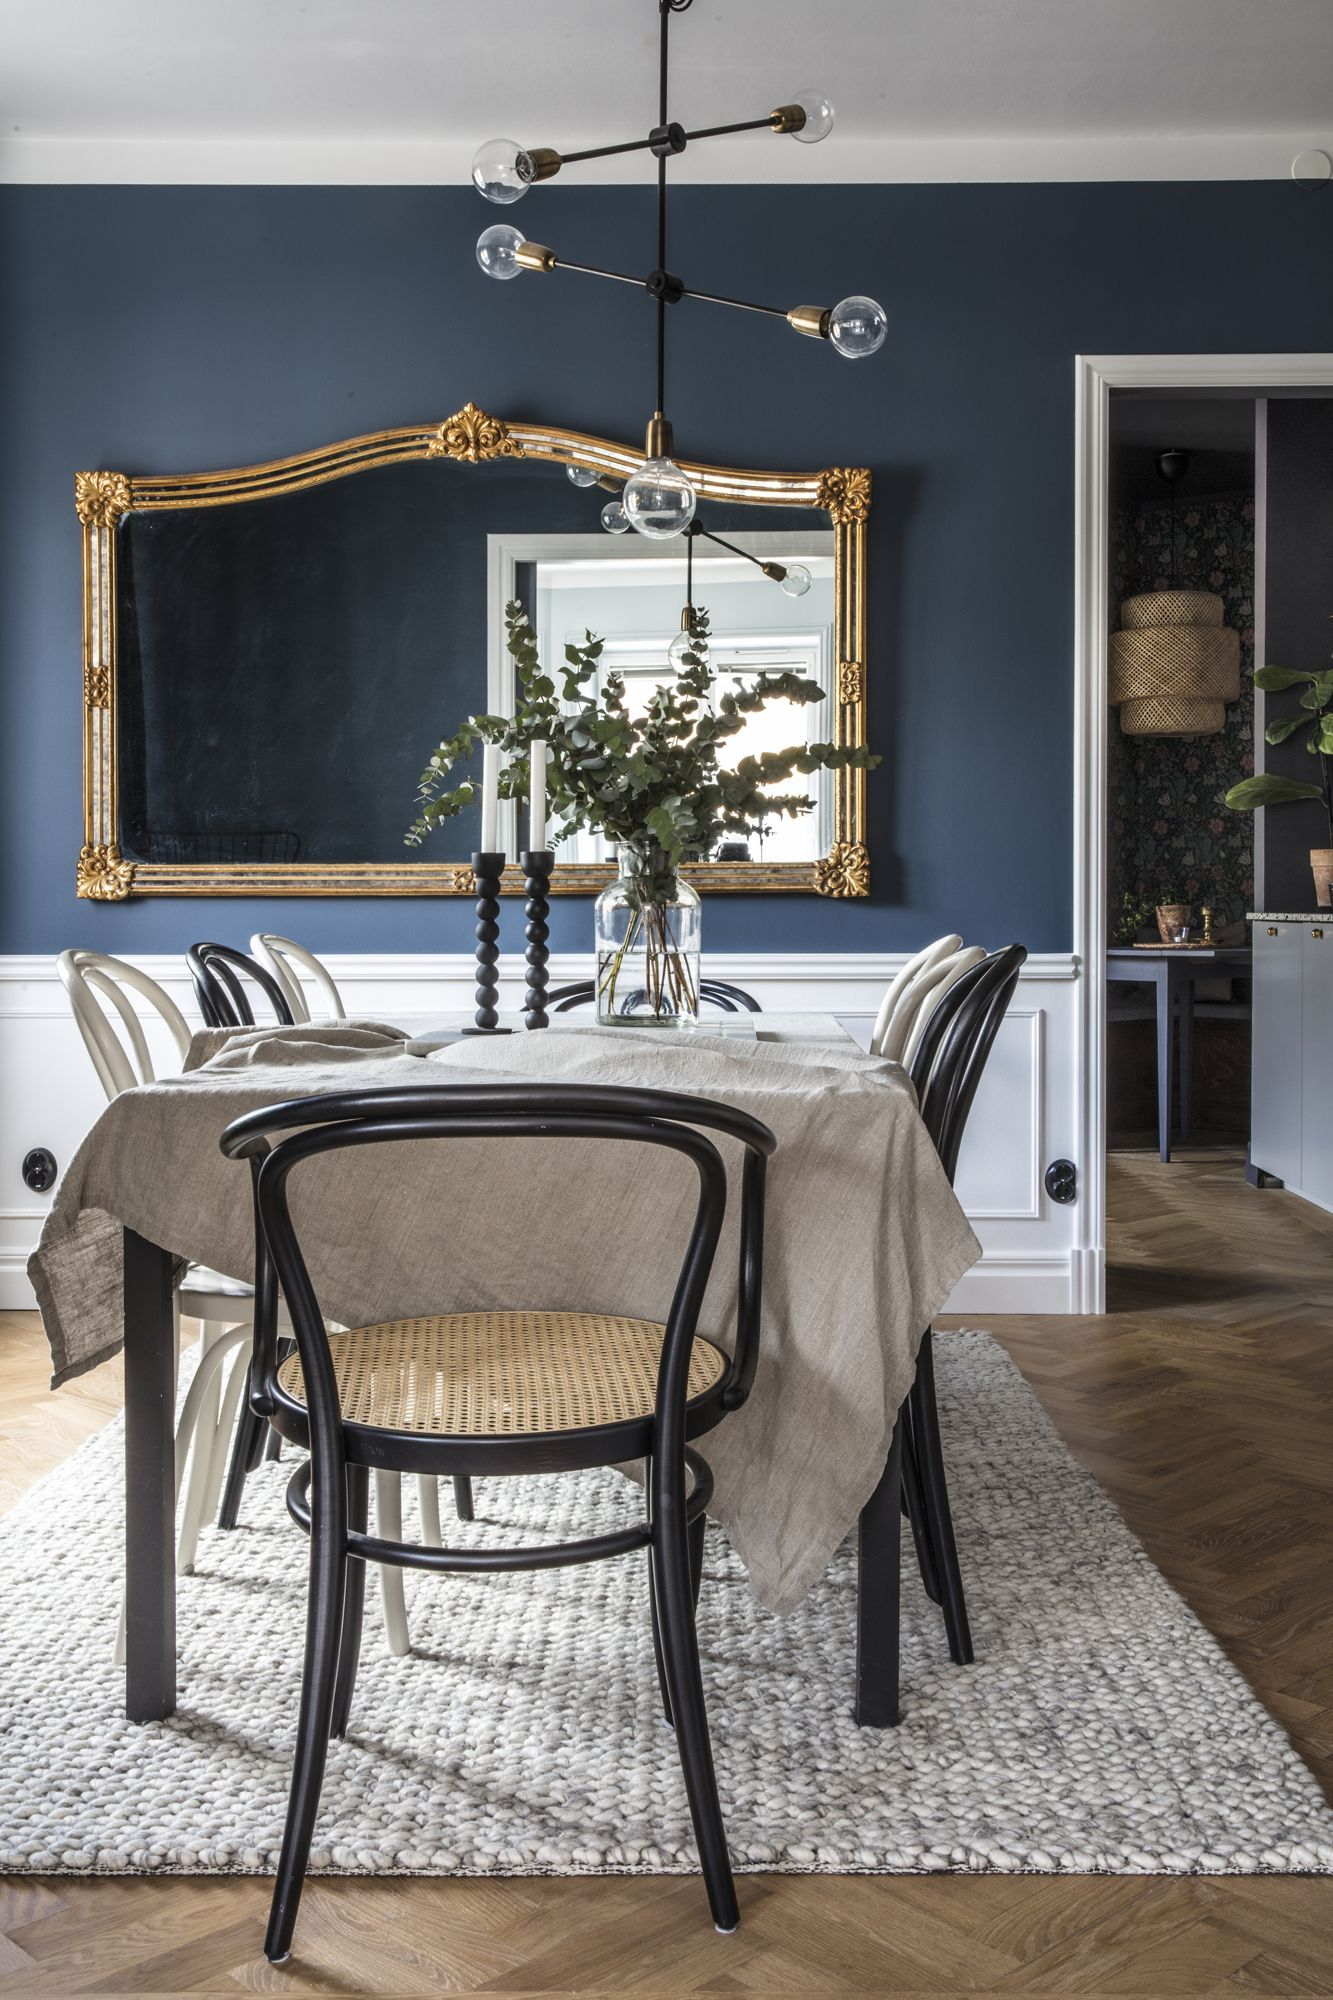 Femma Transformed With Fantastic Color In All Rooms And Ceilings And Safe Decor Ceilings Color Blue Dining Room Walls Mirror Dining Room Dining Room Blue